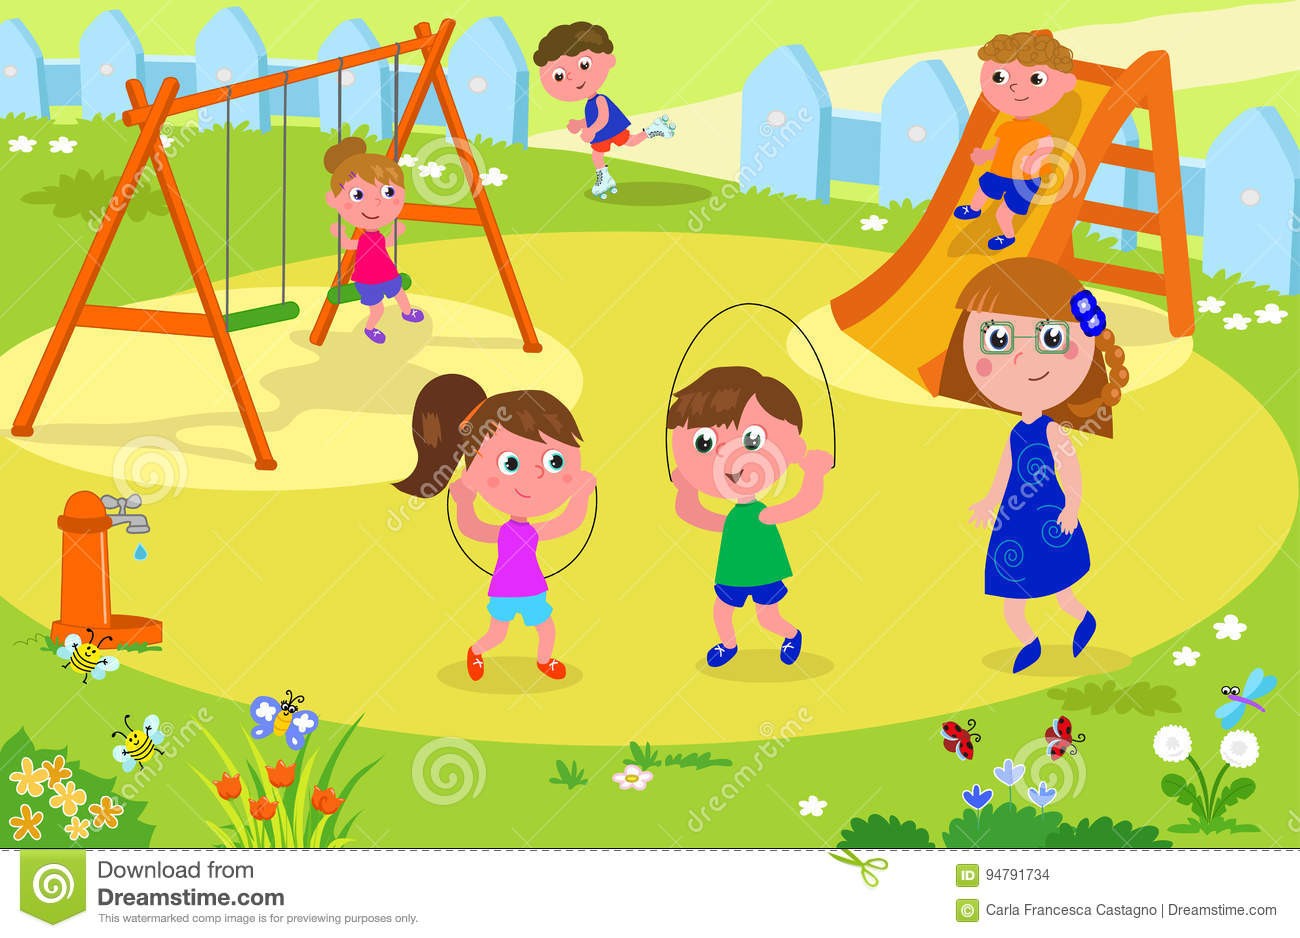 Nature clipart playground. Kids playing park adult image stock